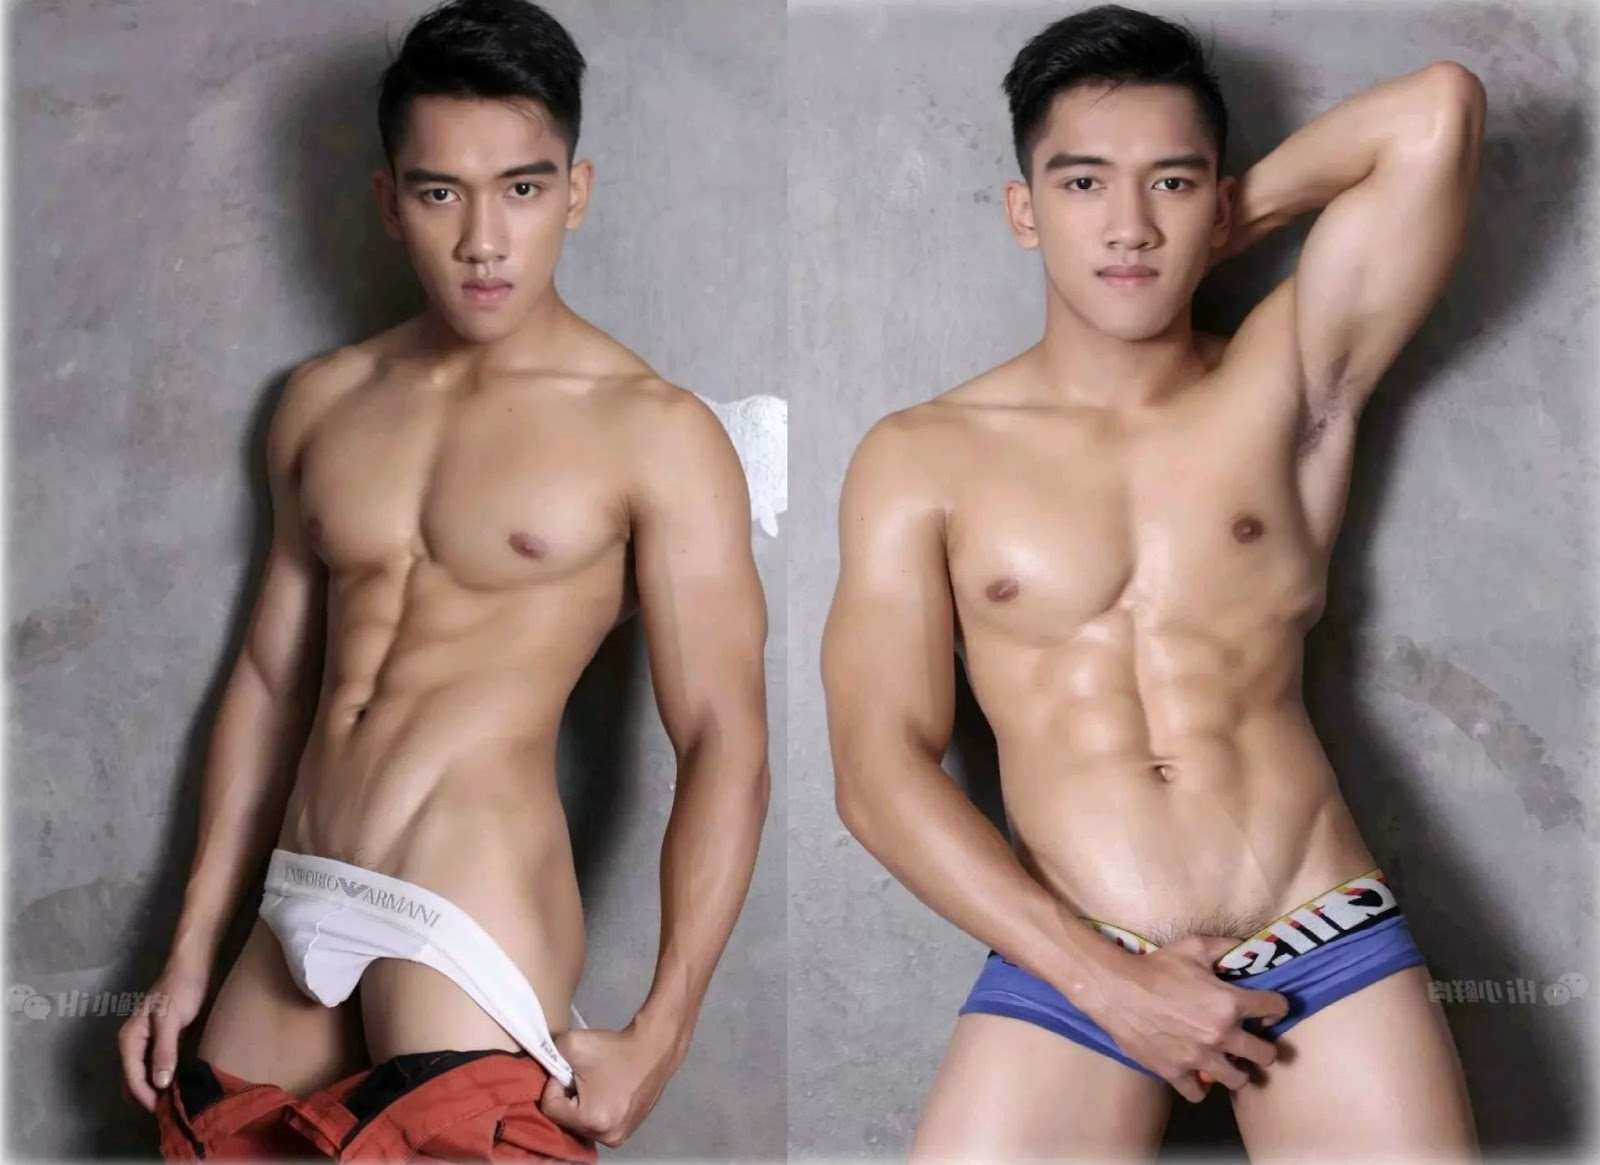 Gang bang thai male model naked photo strange places anal